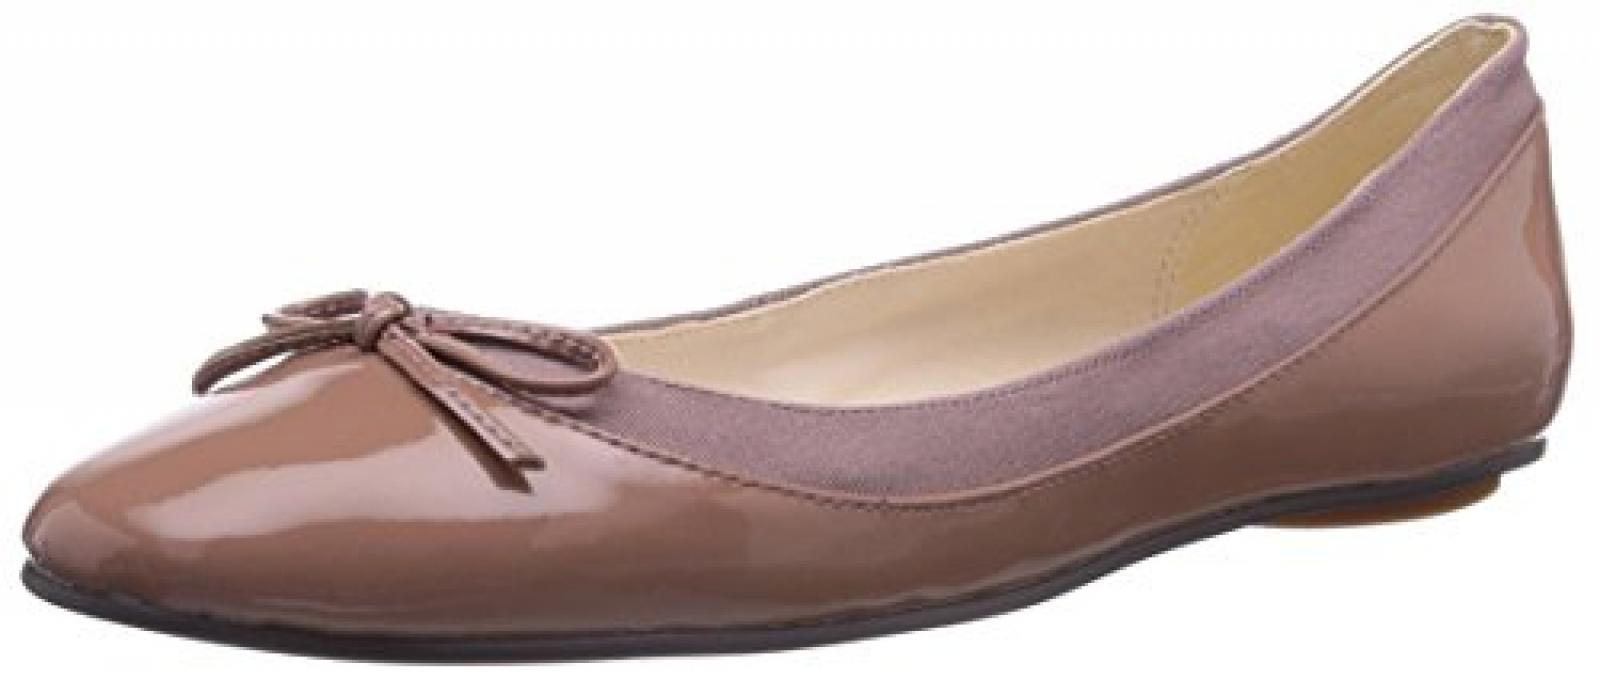 Buffalo London 207-3562 PATENT LEATHER Damen Geschlossene Ballerinas